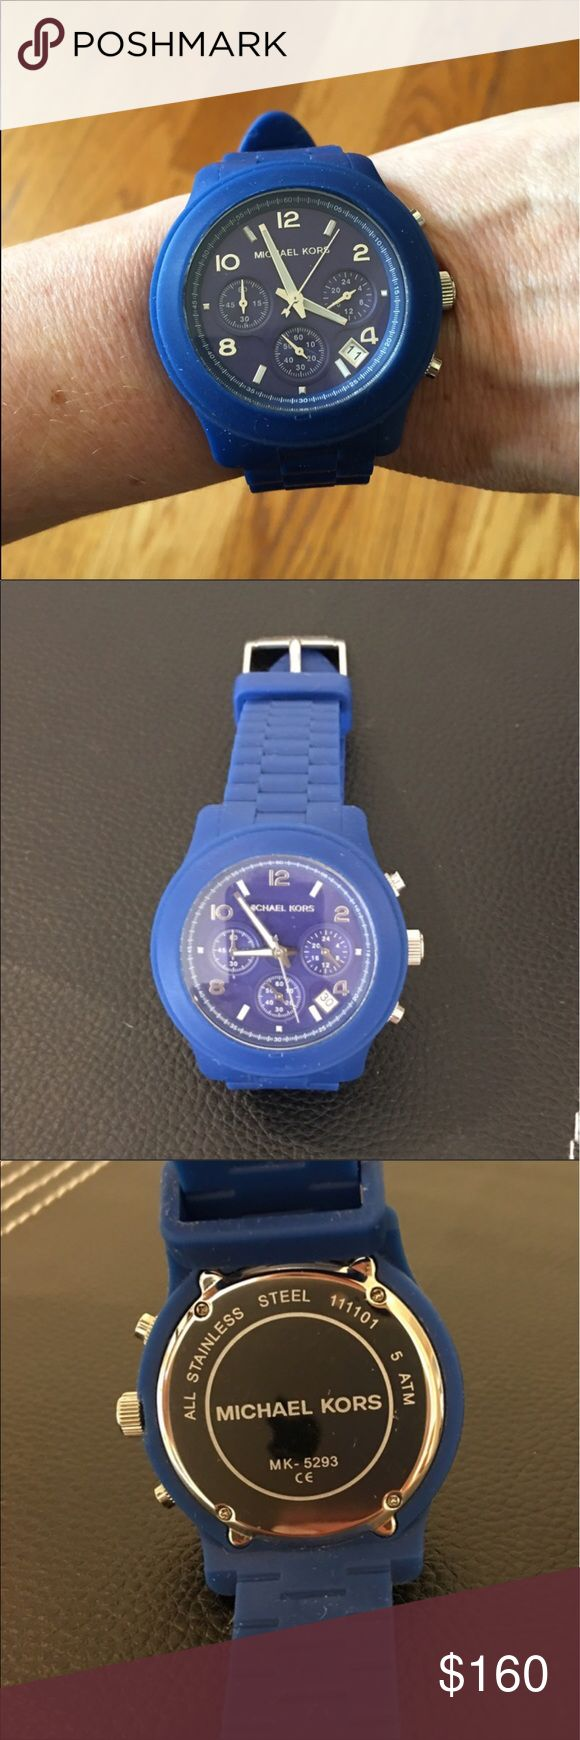 Authentic MICHAEL KORS chronograph watch ⌚️ Authentic MICHAEL KORS chronograph watch. Features royal blue silicon rubber band, blue face, and is water resistant watch.   Discontinued model, MK5293.  Working watch but may need a new battery. In lovely gently worn preowned condition. Please ask questions prior to purchase. 🚫Trades.  Reasonable offers only considered. Accessories Jewelry